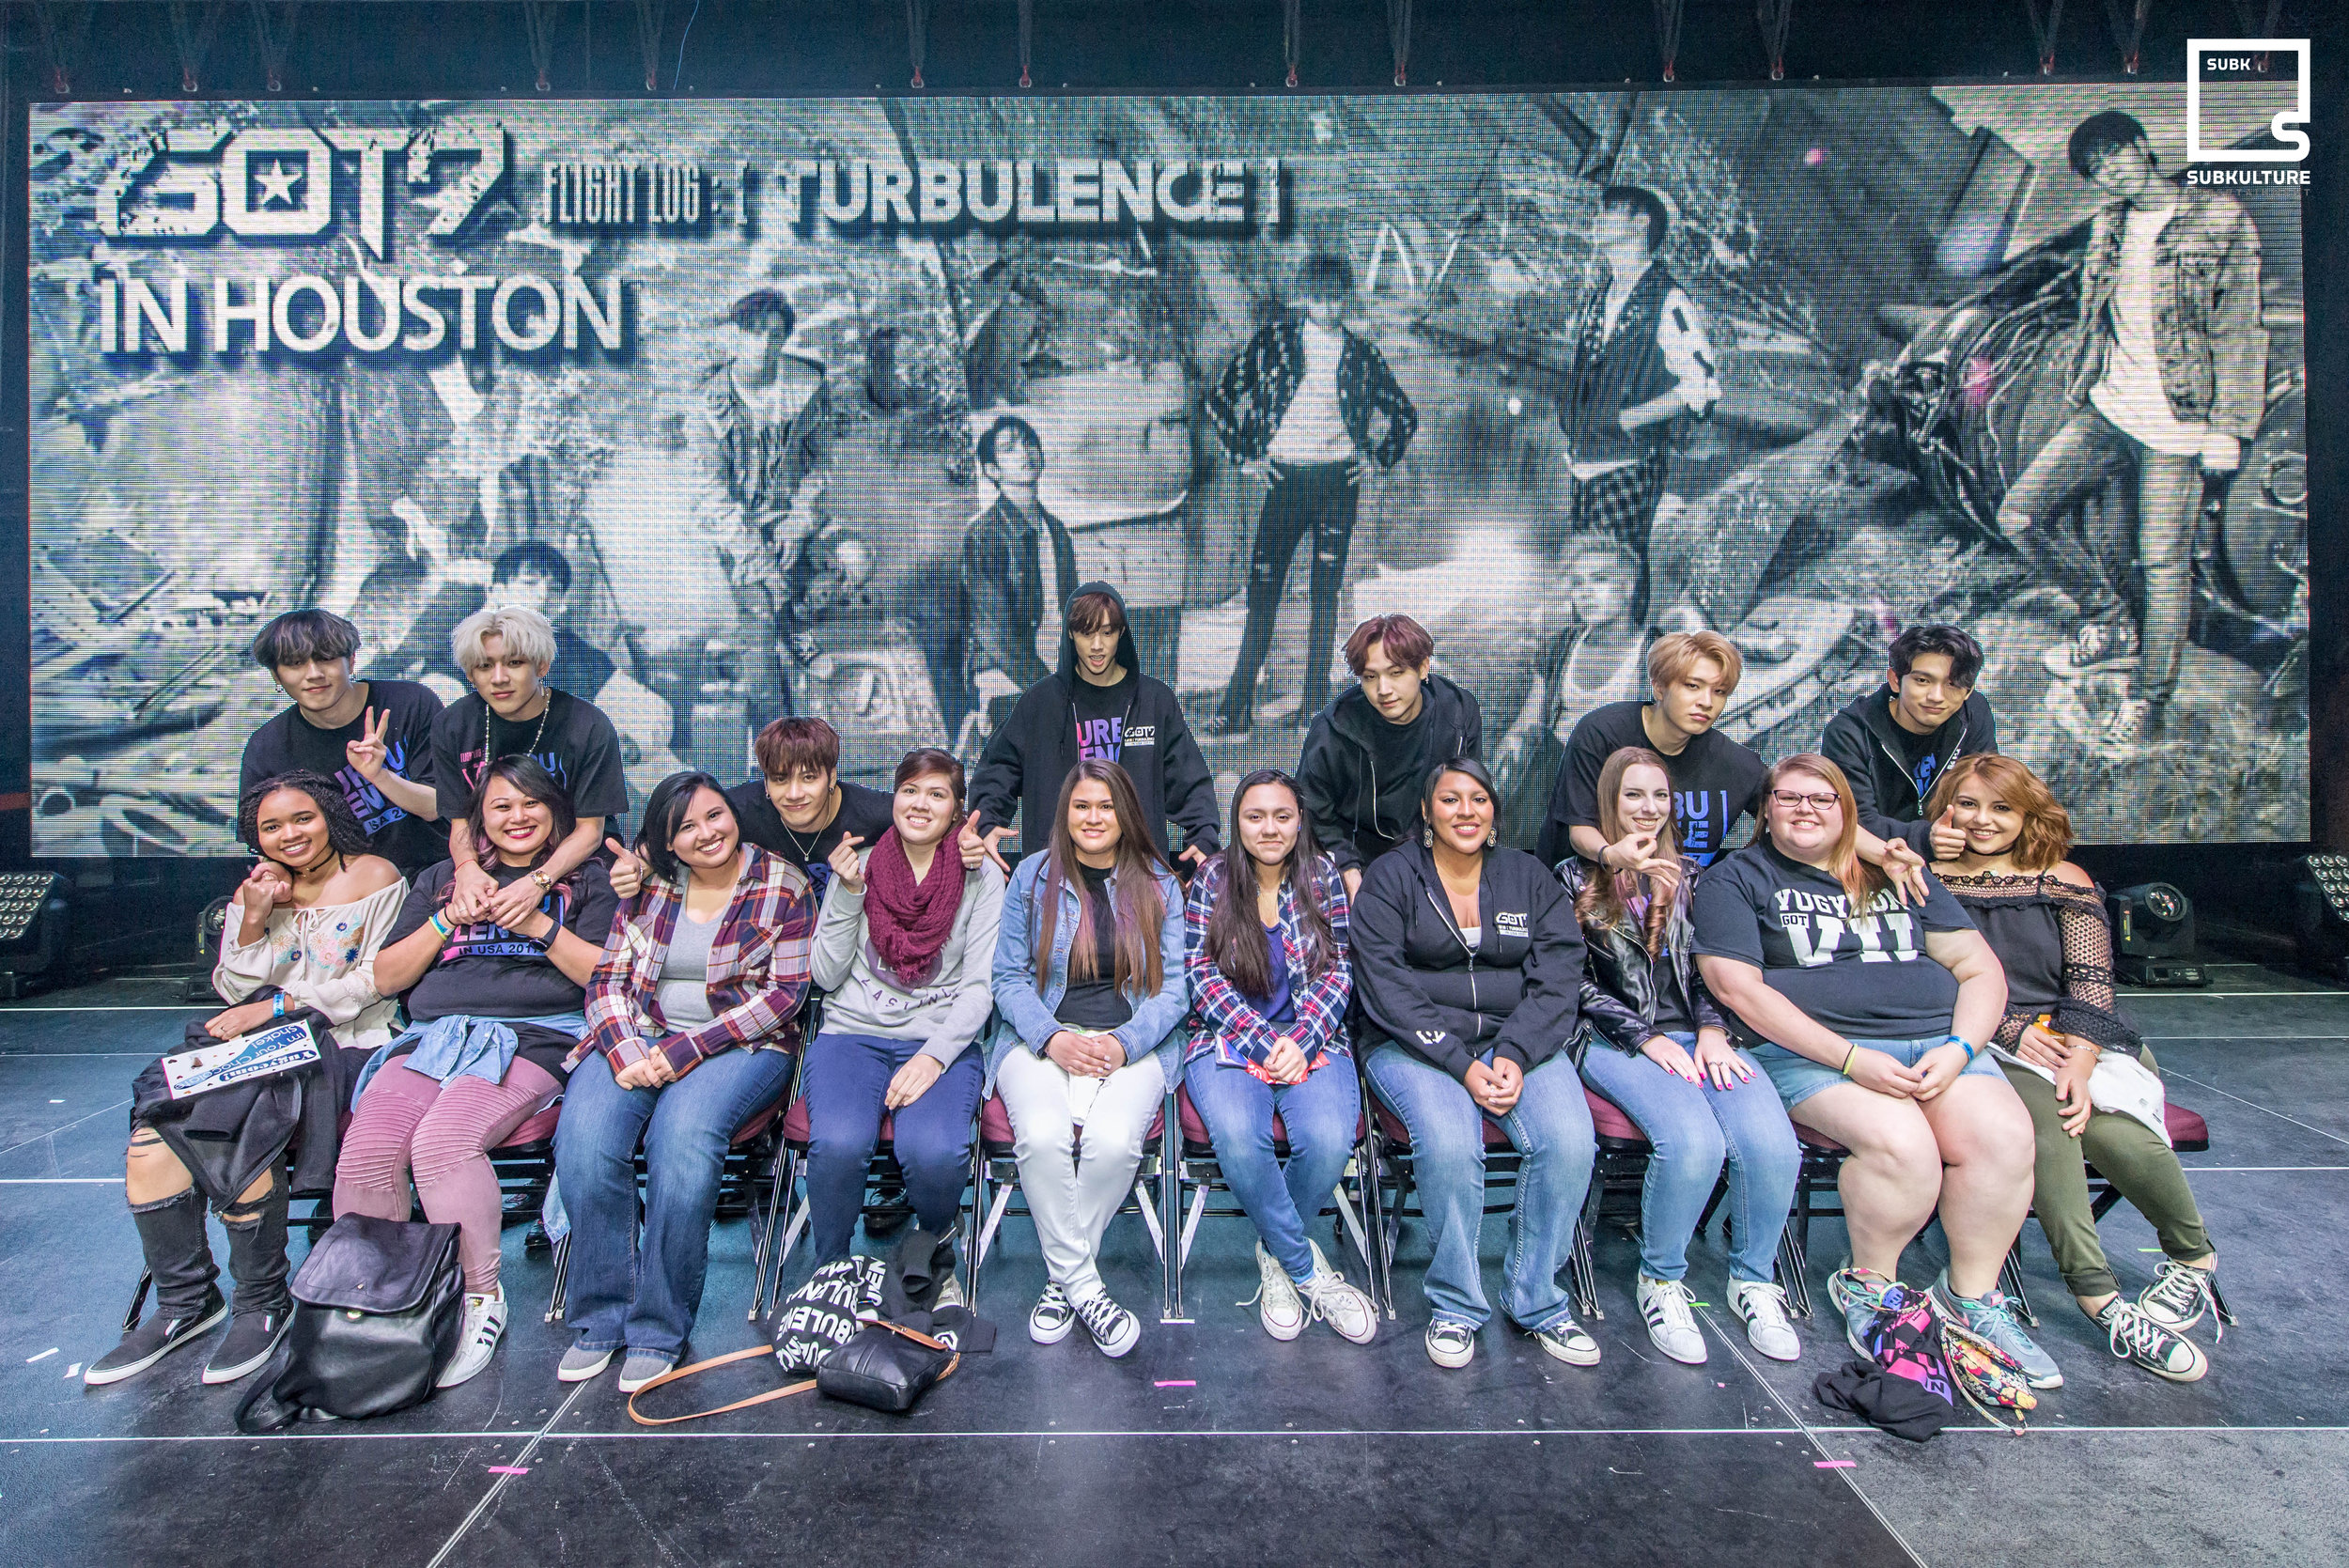 GOT7 Fan Photo Houston 2017 SubKulture Entertainment-3755 copy.jpg